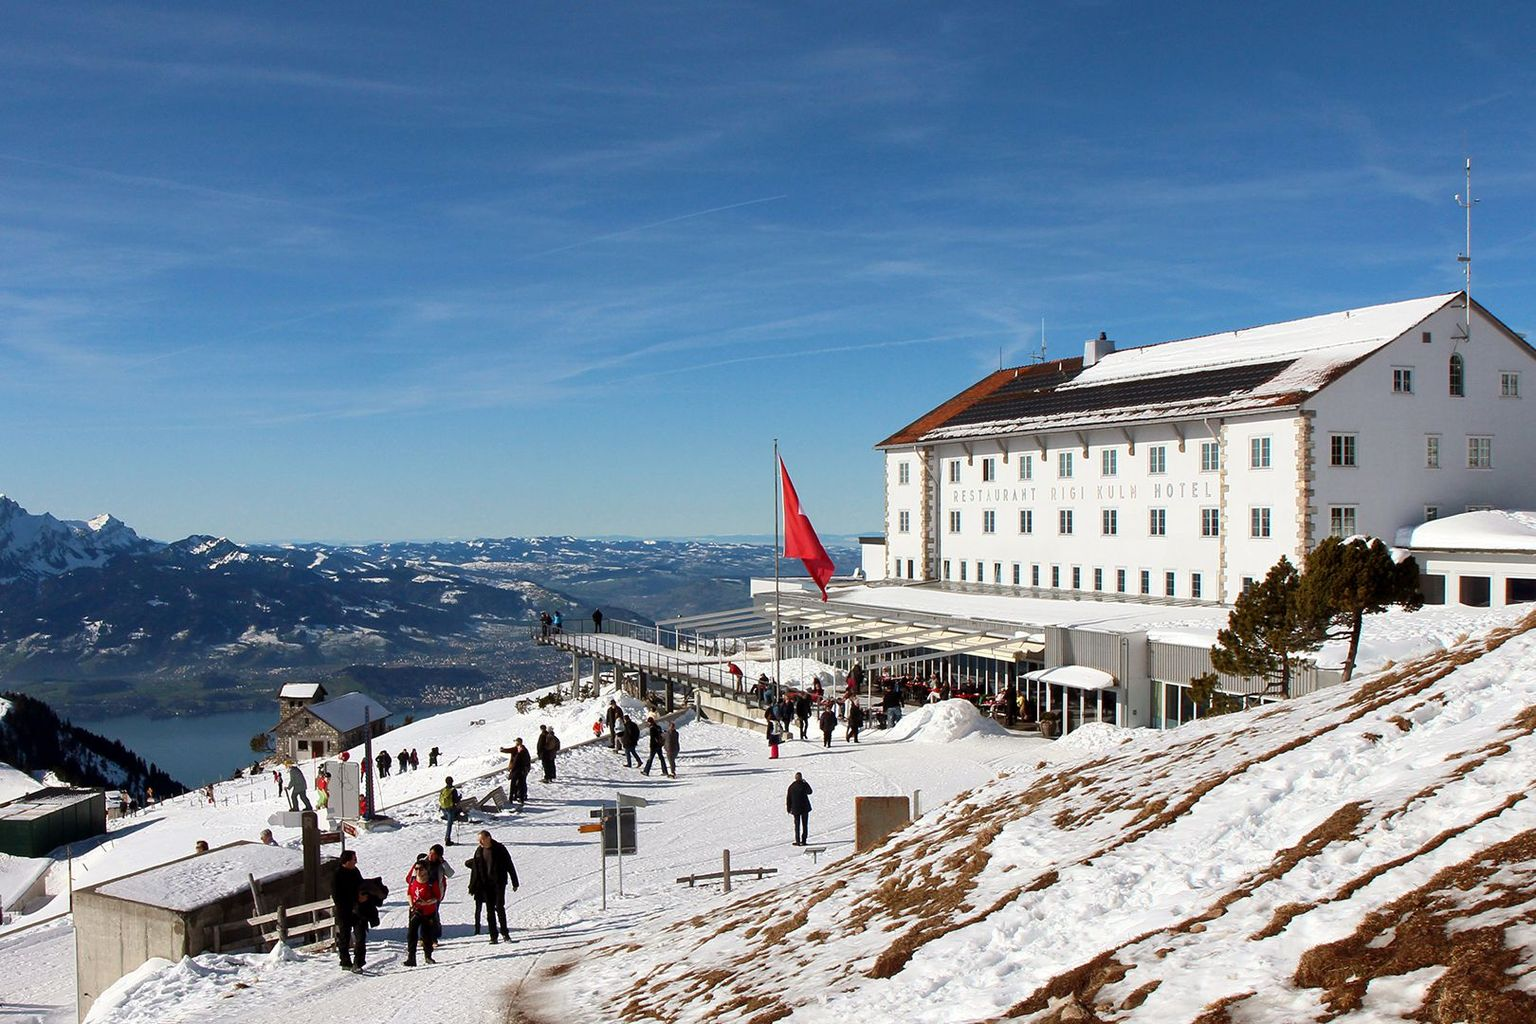 Rigi Workshop 2016 - Rigi Kulm Hotel